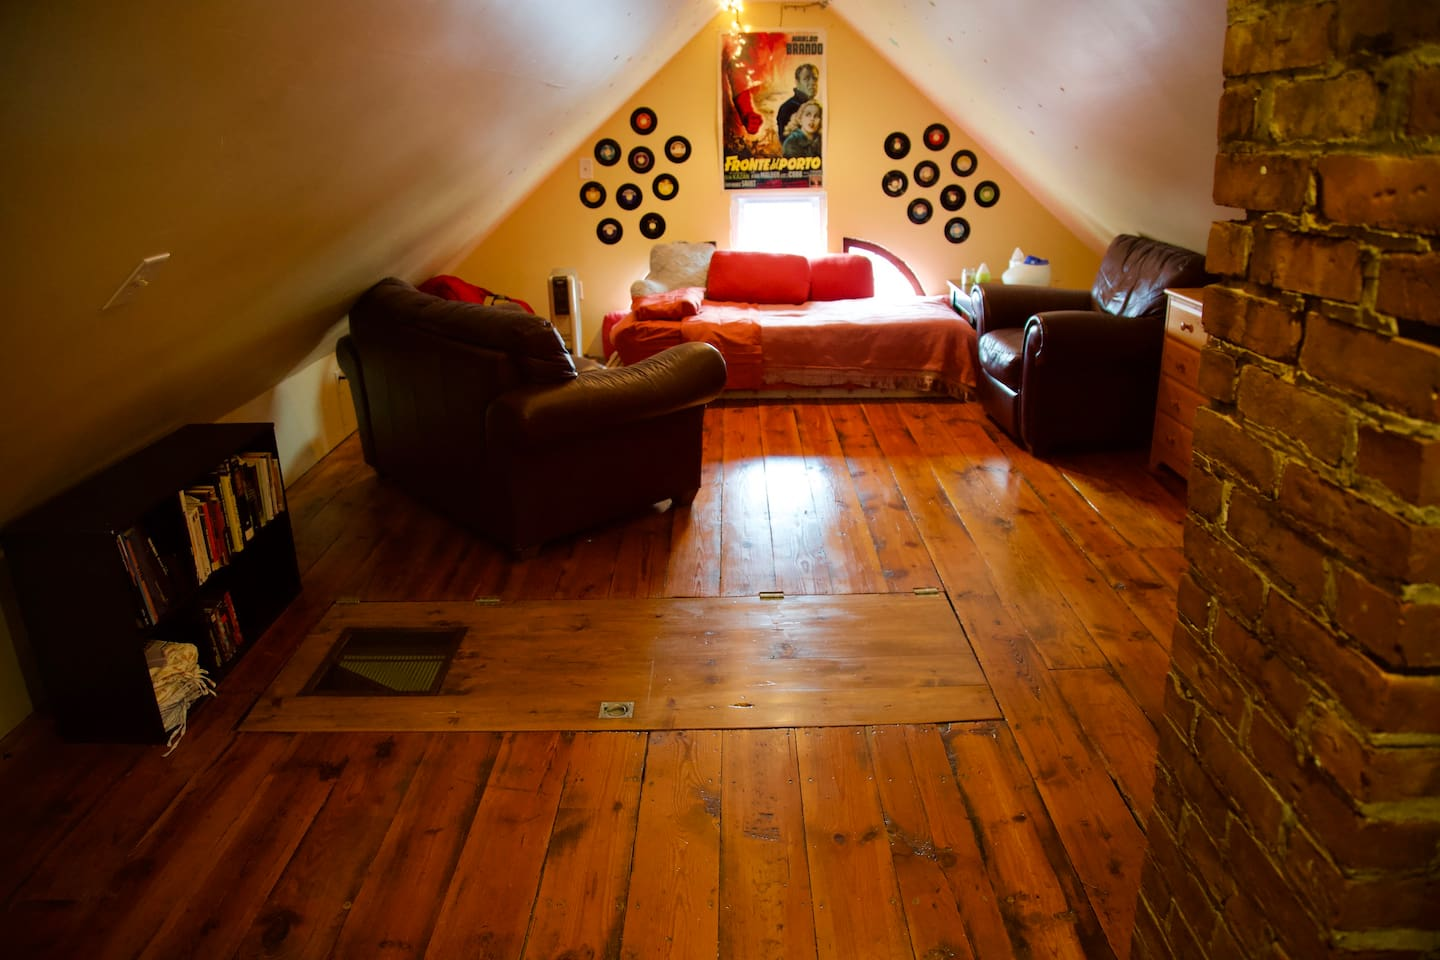 Cozy bright, clean space and view of the trap door entry way folded down for easeful living and walking about.